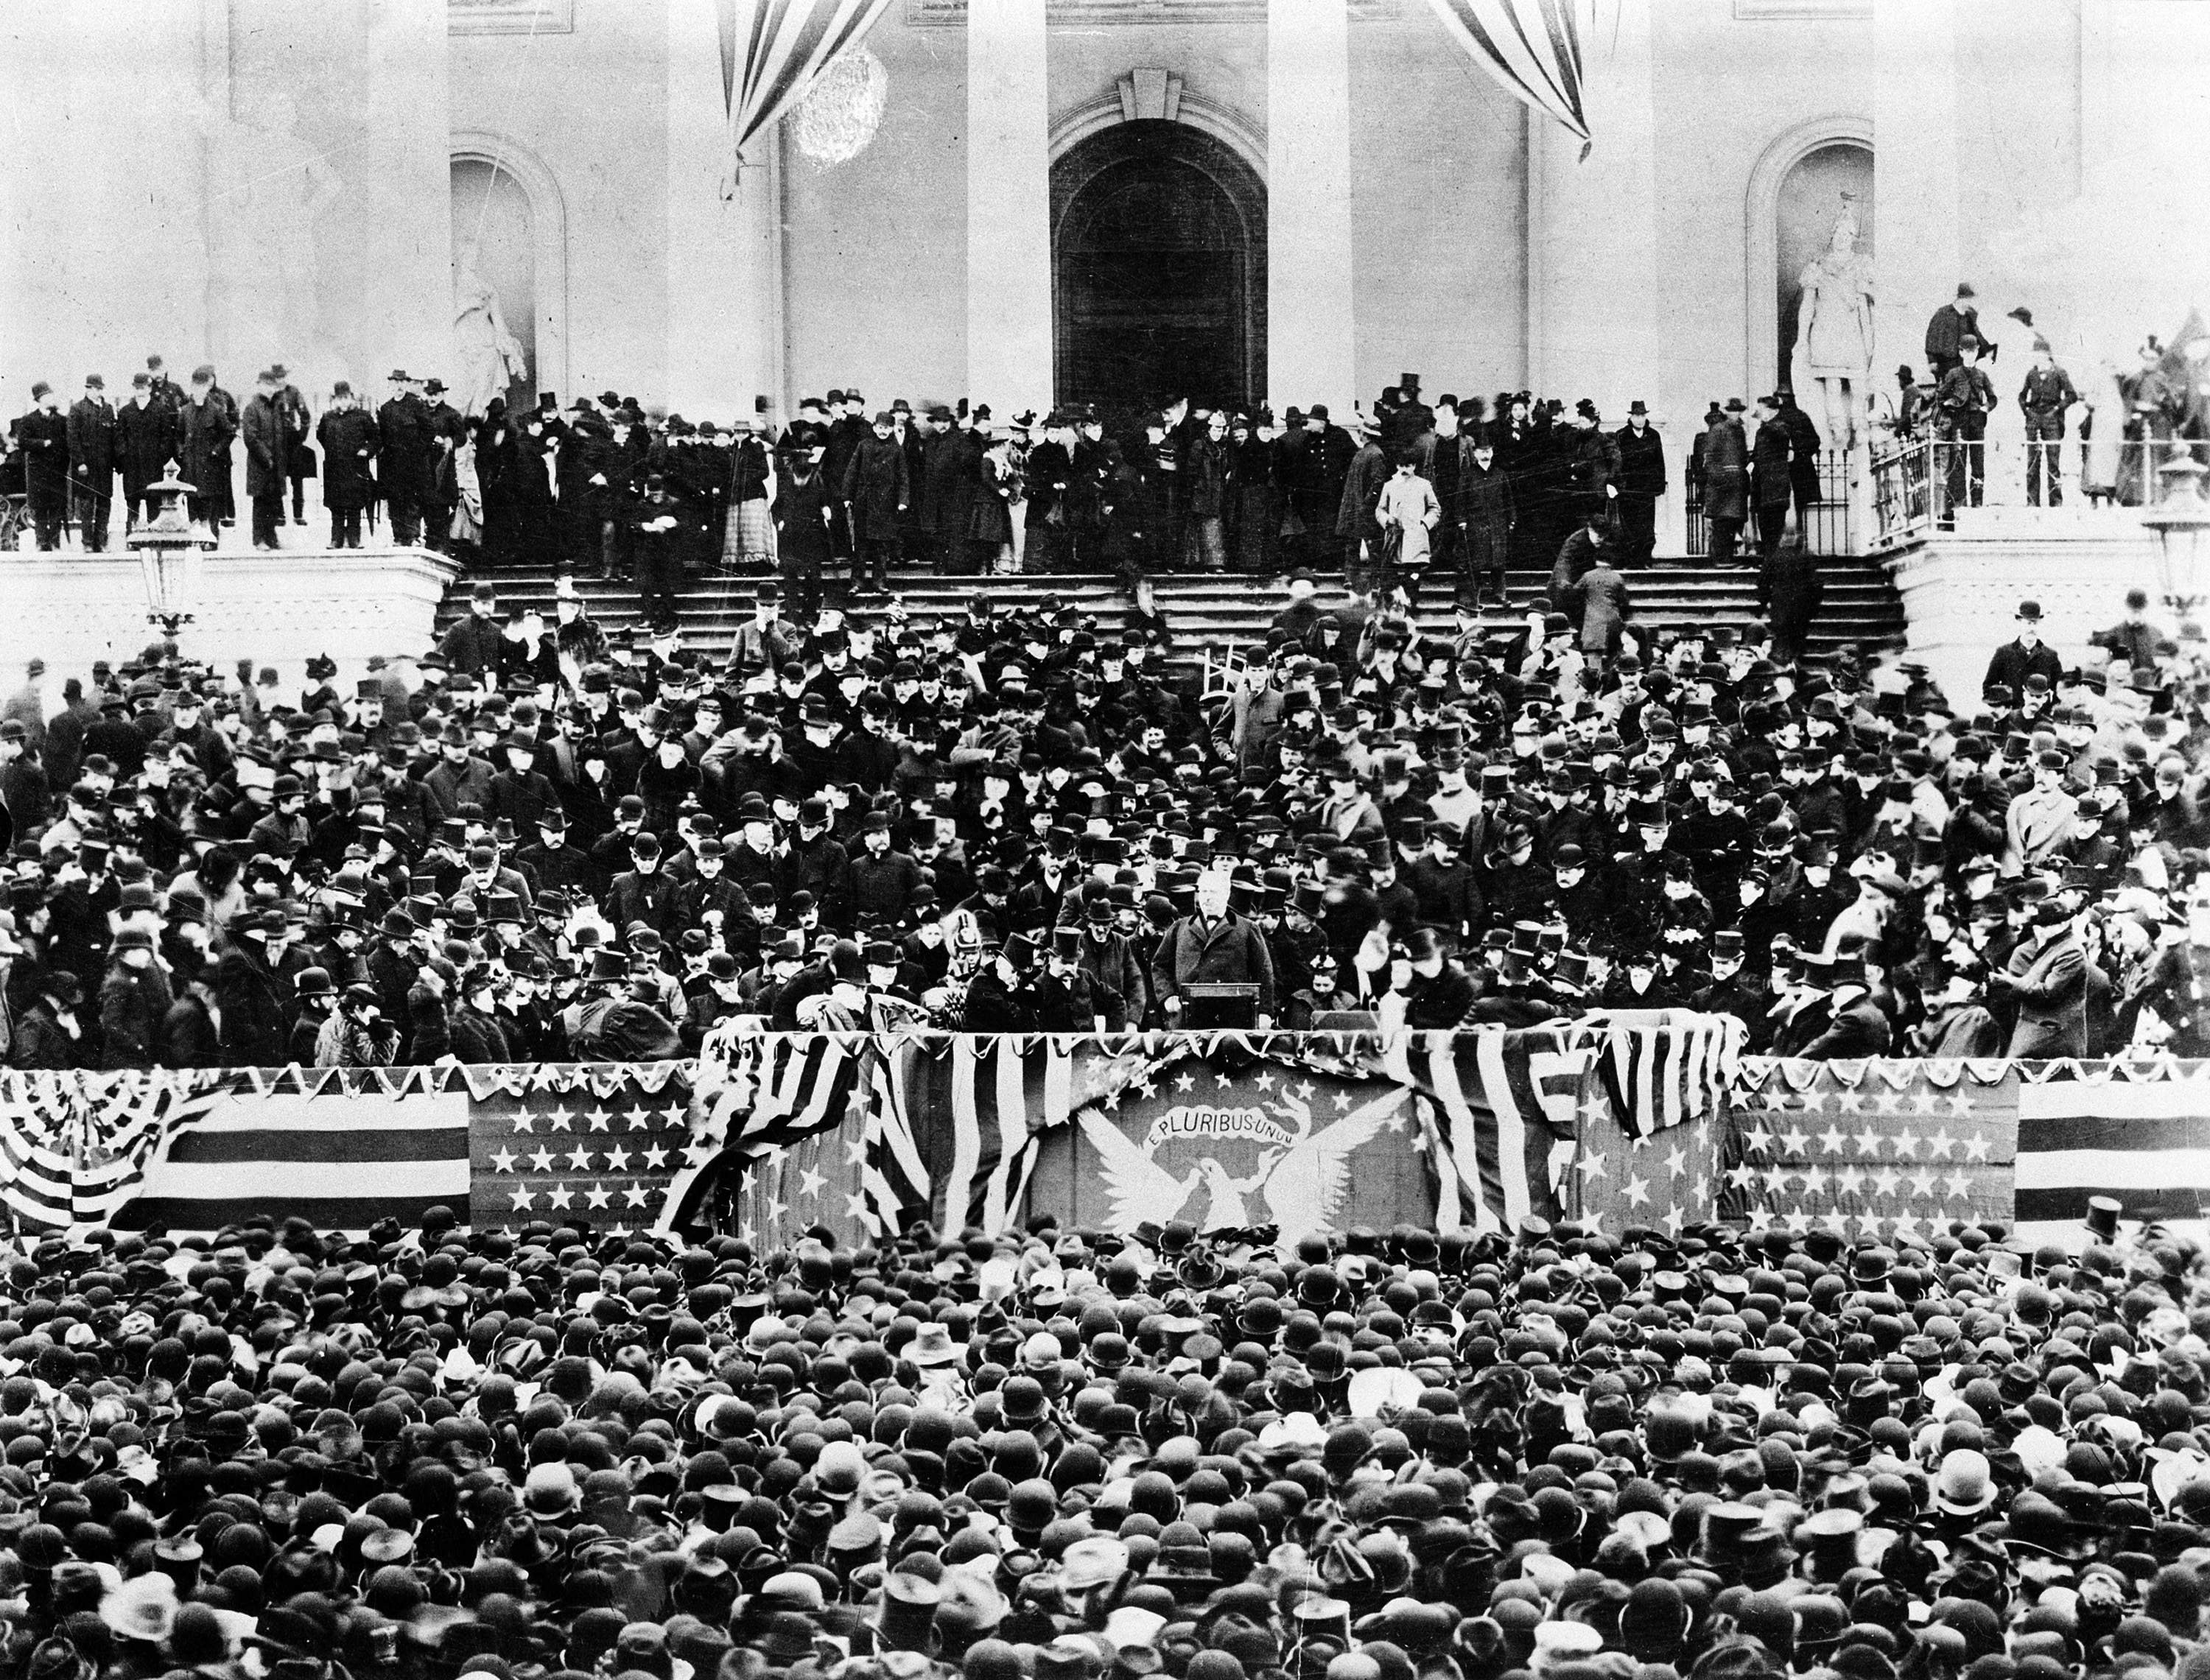 abraham lincolns second inaugural address is a powerful speech From booth's own accounts we know that he was present at abraham lincoln's second inauguration he later lamented to his friend, samuel knapp chester , what an excellent chance i had to kill the president, if i had wished, on inauguration-day.